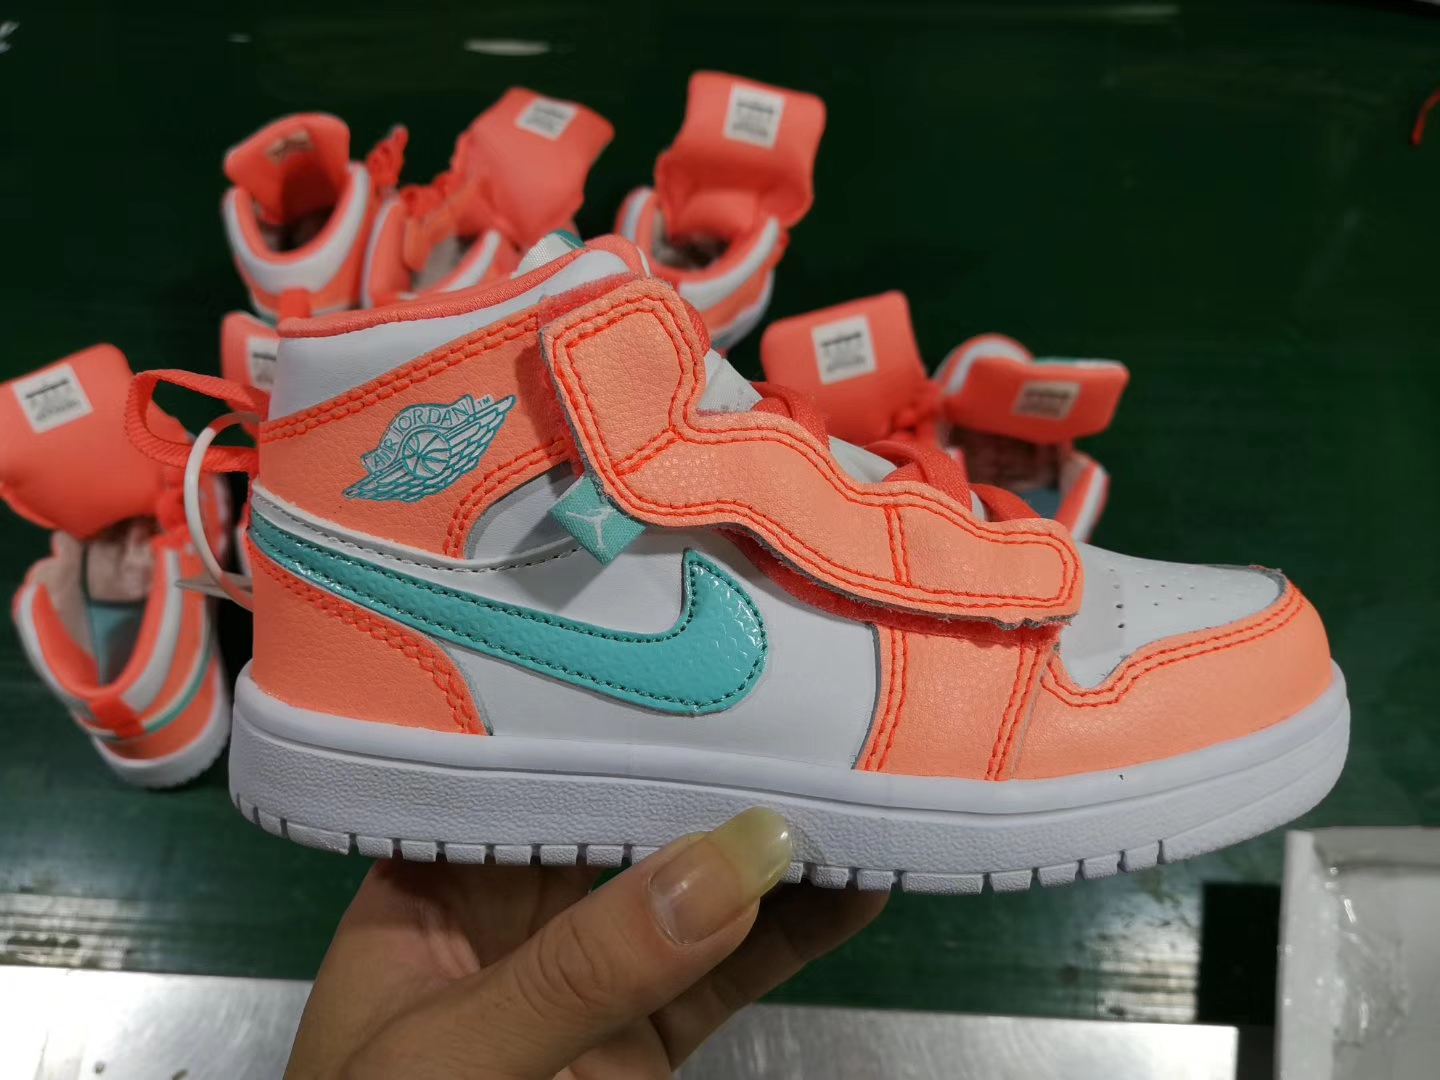 New Kids Air Jordan 1 Orange Gint Green White Shoes